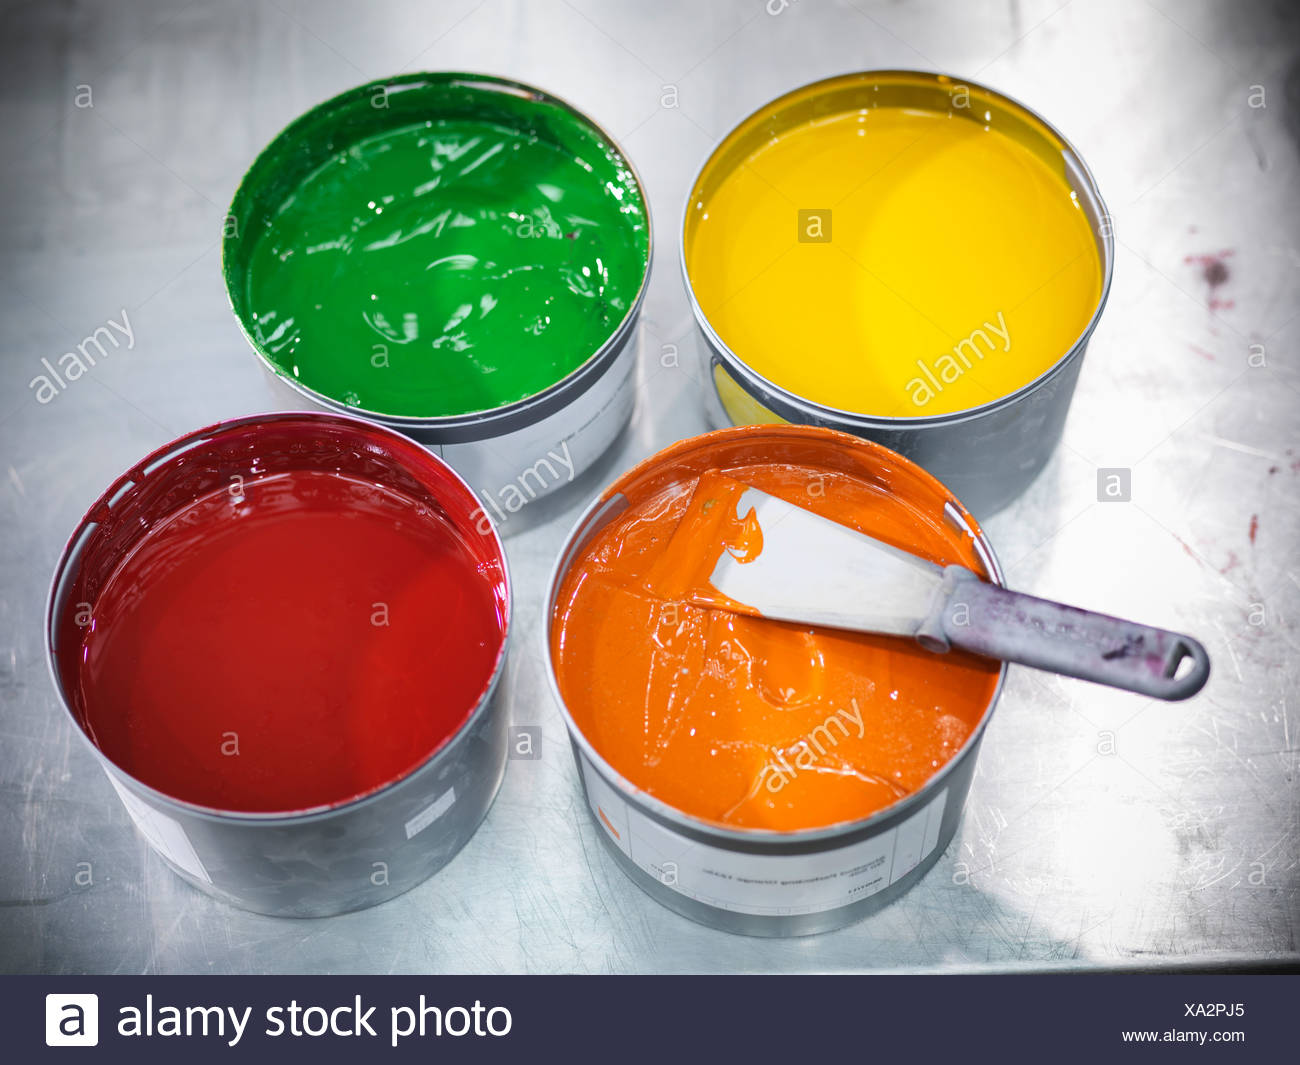 Buckets of colorful printing ink - Stock Image